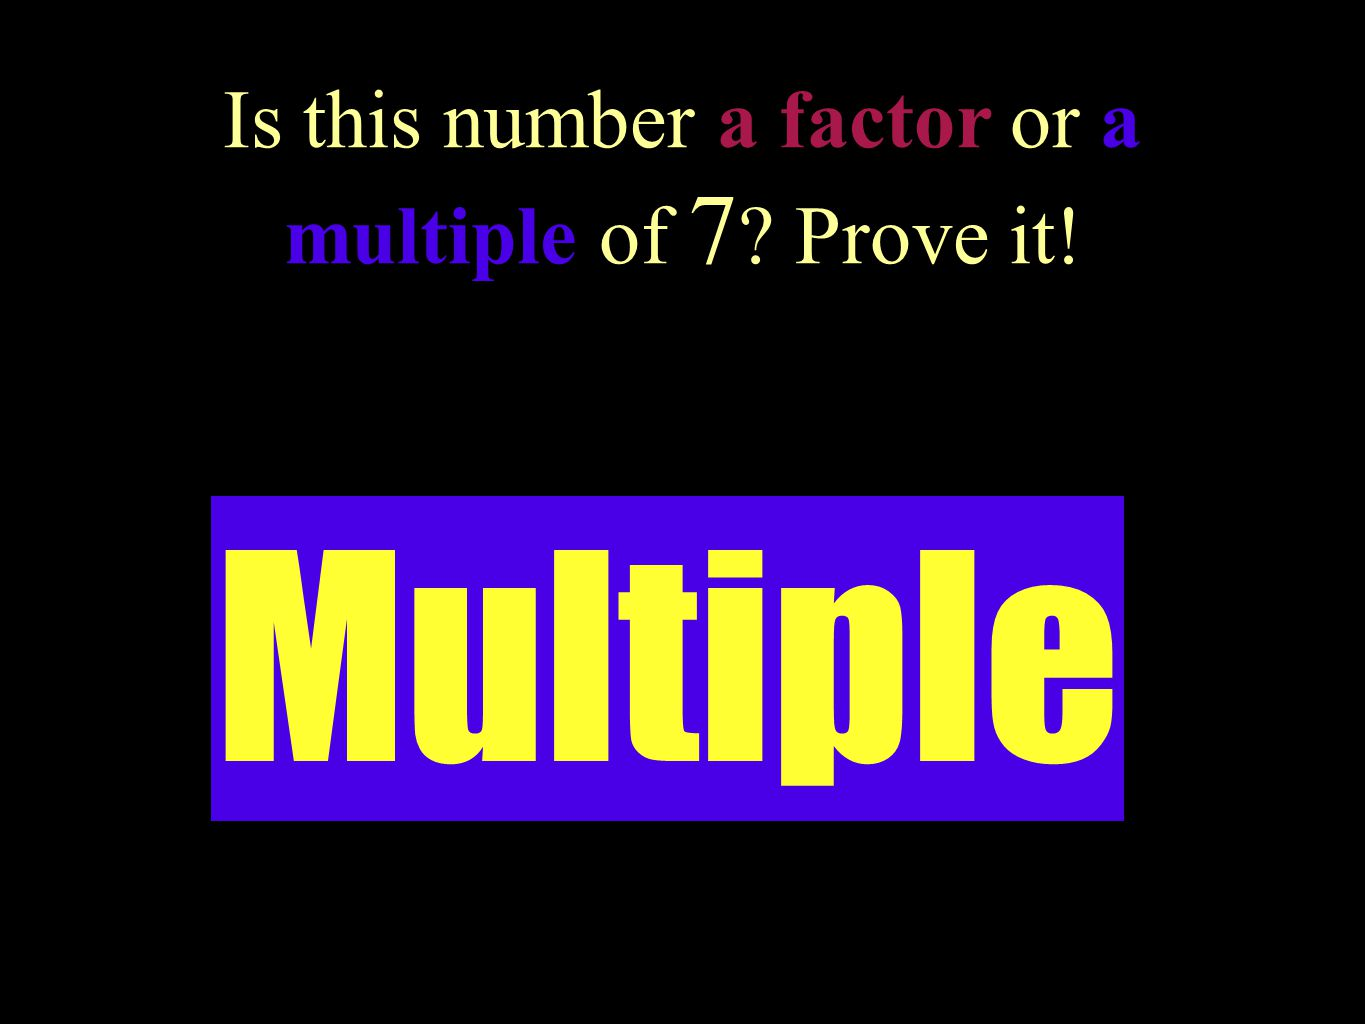 Is this number a factor or a multiple of 7 Prove it!